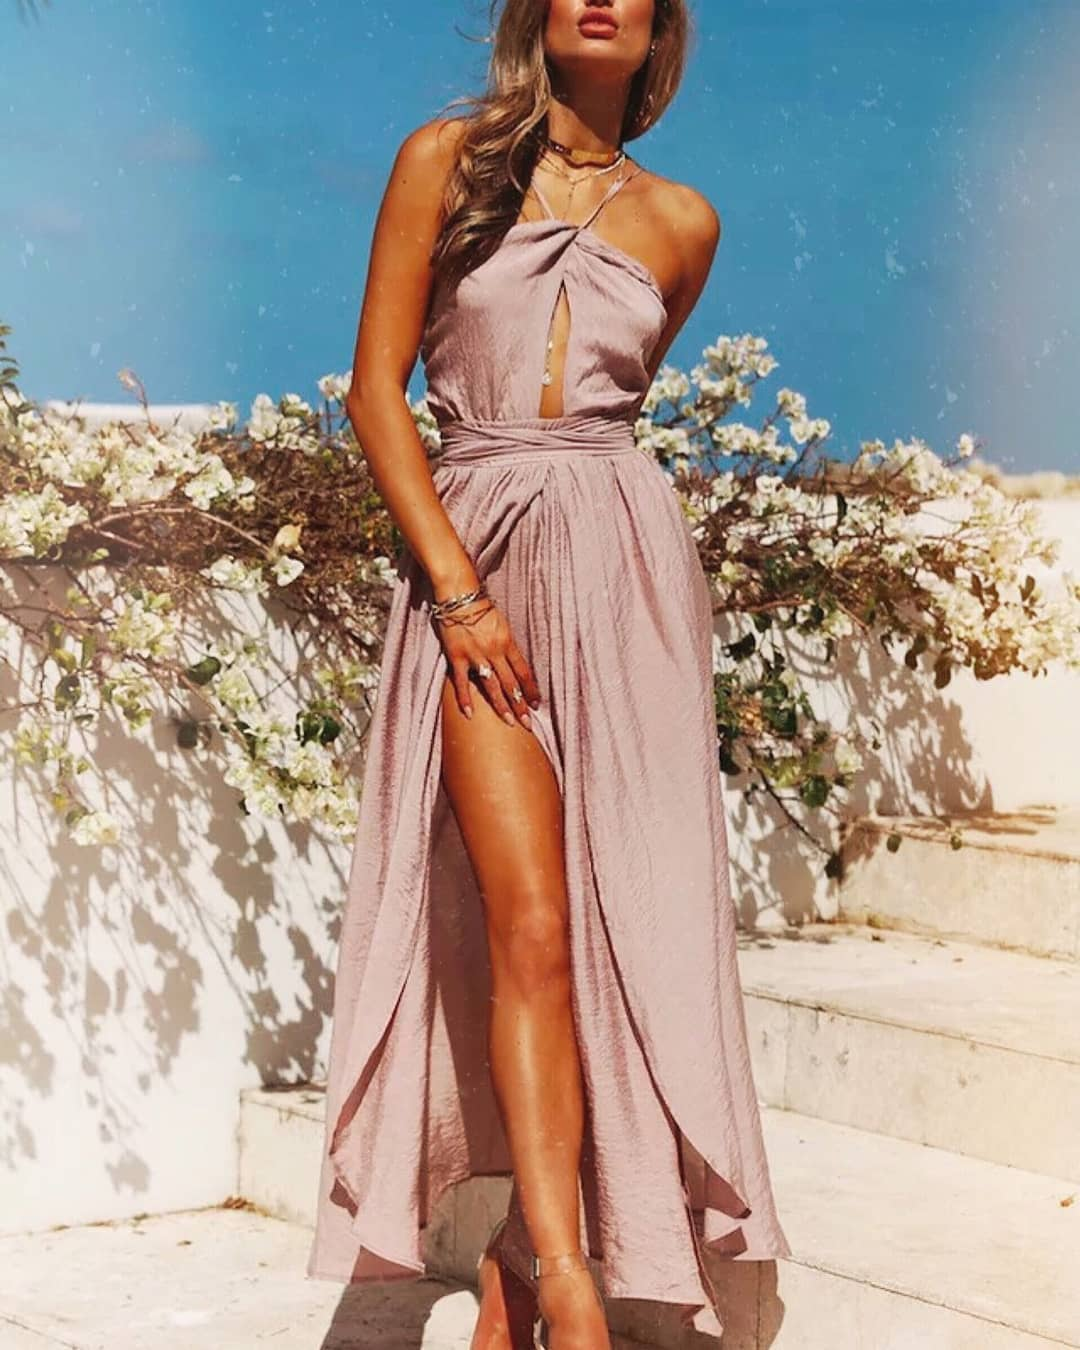 Light Pink Maxi Dress In Grecian Style With Spaghetti Halter Neck For Summer 2019